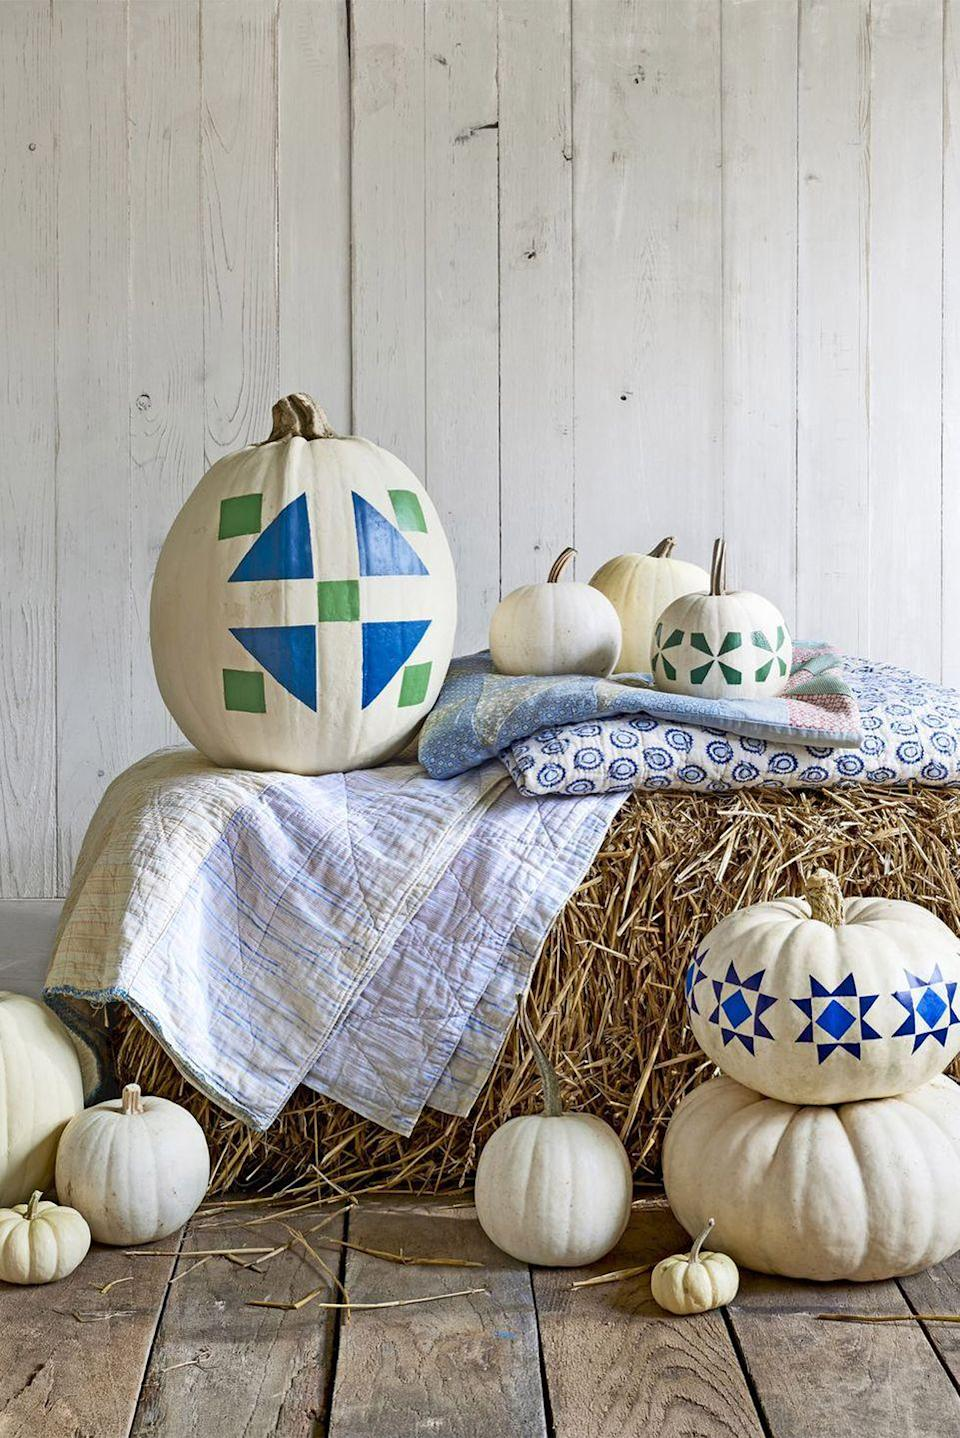 "<p>Try something new with your jack-o'-lanterns this year. <a href=""https://www.countryliving.com/diy-crafts/g279/pumpkin-carving-ideas/"" rel=""nofollow noopener"" target=""_blank"" data-ylk=""slk:Carving ideas for pumpkins"" class=""link rapid-noclick-resp"">Carving ideas for pumpkins</a> are cool, but <a href=""https://www.countryliving.com/diy-crafts/g1363/painted-pumpkins/"" rel=""nofollow noopener"" target=""_blank"" data-ylk=""slk:painting pumpkins for Halloween"" class=""link rapid-noclick-resp"">painting pumpkins for Halloween</a> opens up a ton of creative possibilities.</p><p><a class=""link rapid-noclick-resp"" href=""https://www.amazon.com/Apple-Barrel-Acrylic-PROMOABI-Assorted/dp/B00ATJSD8I/?tag=syn-yahoo-20&ascsubtag=%5Bartid%7C2139.g.34440360%5Bsrc%7Cyahoo-us"" rel=""nofollow noopener"" target=""_blank"" data-ylk=""slk:SHOP ACRYLIC PAINT"">SHOP ACRYLIC PAINT</a></p>"